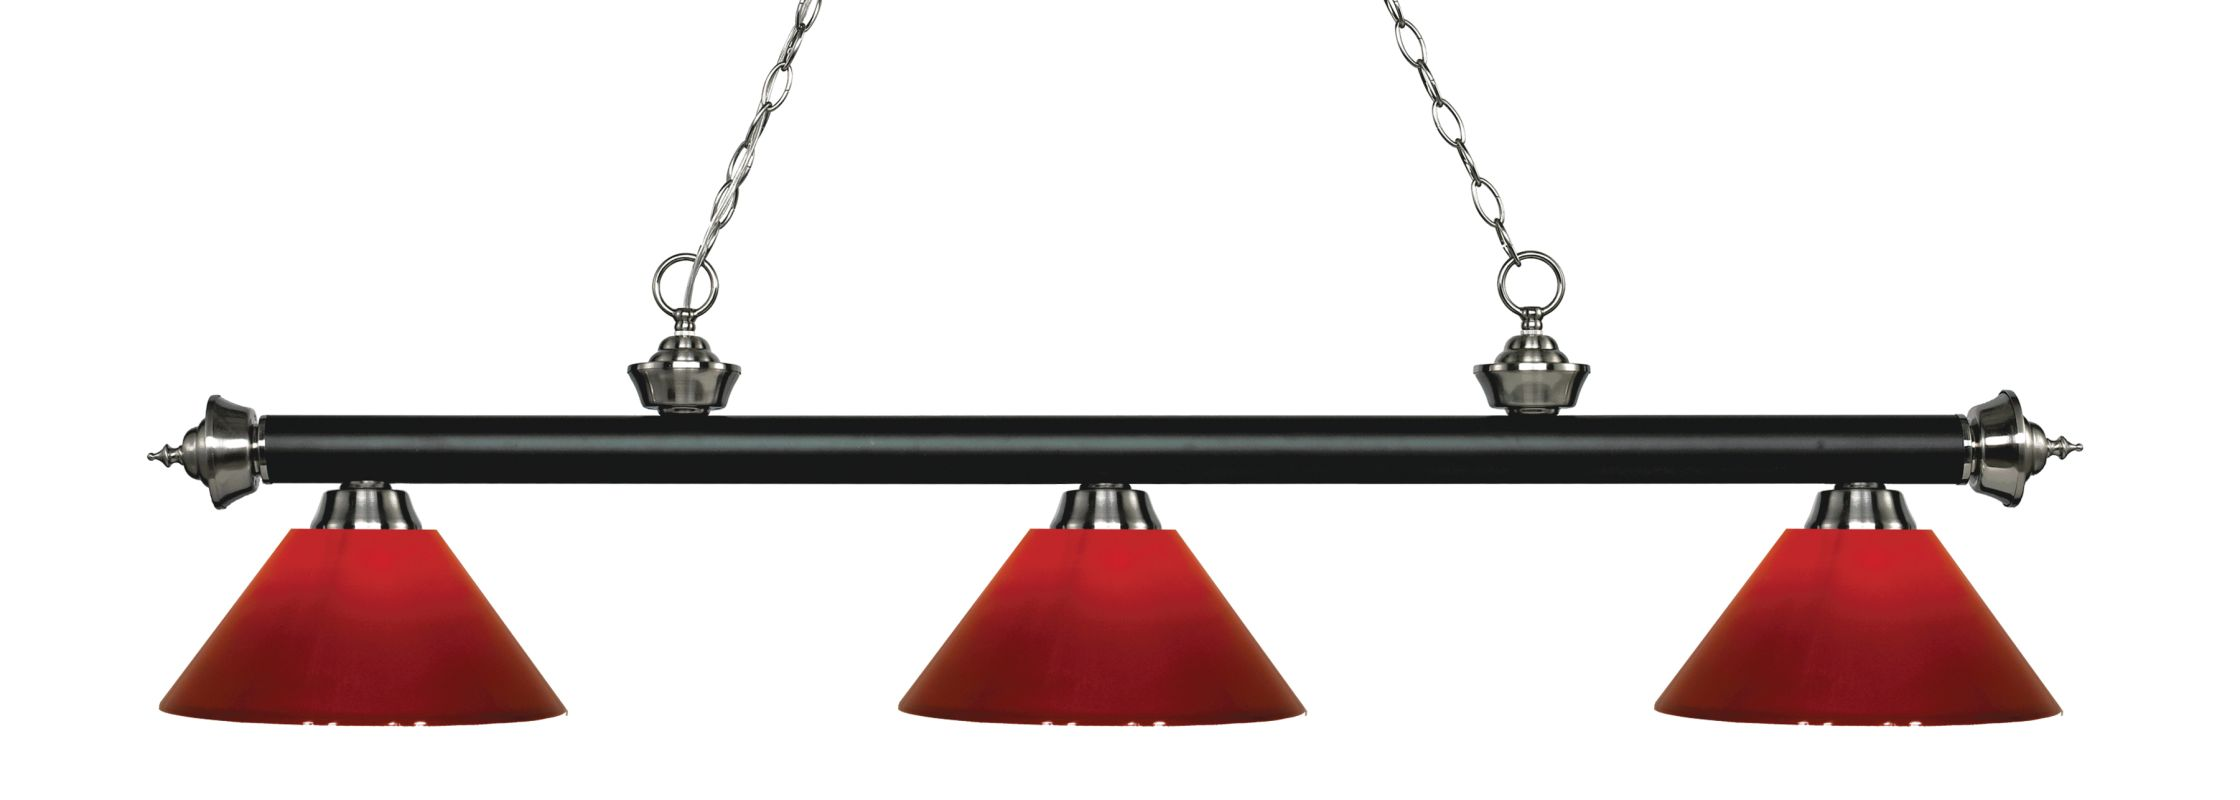 Z-Lite 200-3-PRD Riviera 3 Light Island/Billiard Chandelier with Red Sale $296.00 ITEM: bci2734550 ID#:200-3MB+BN-PRD UPC: 685659053876 :